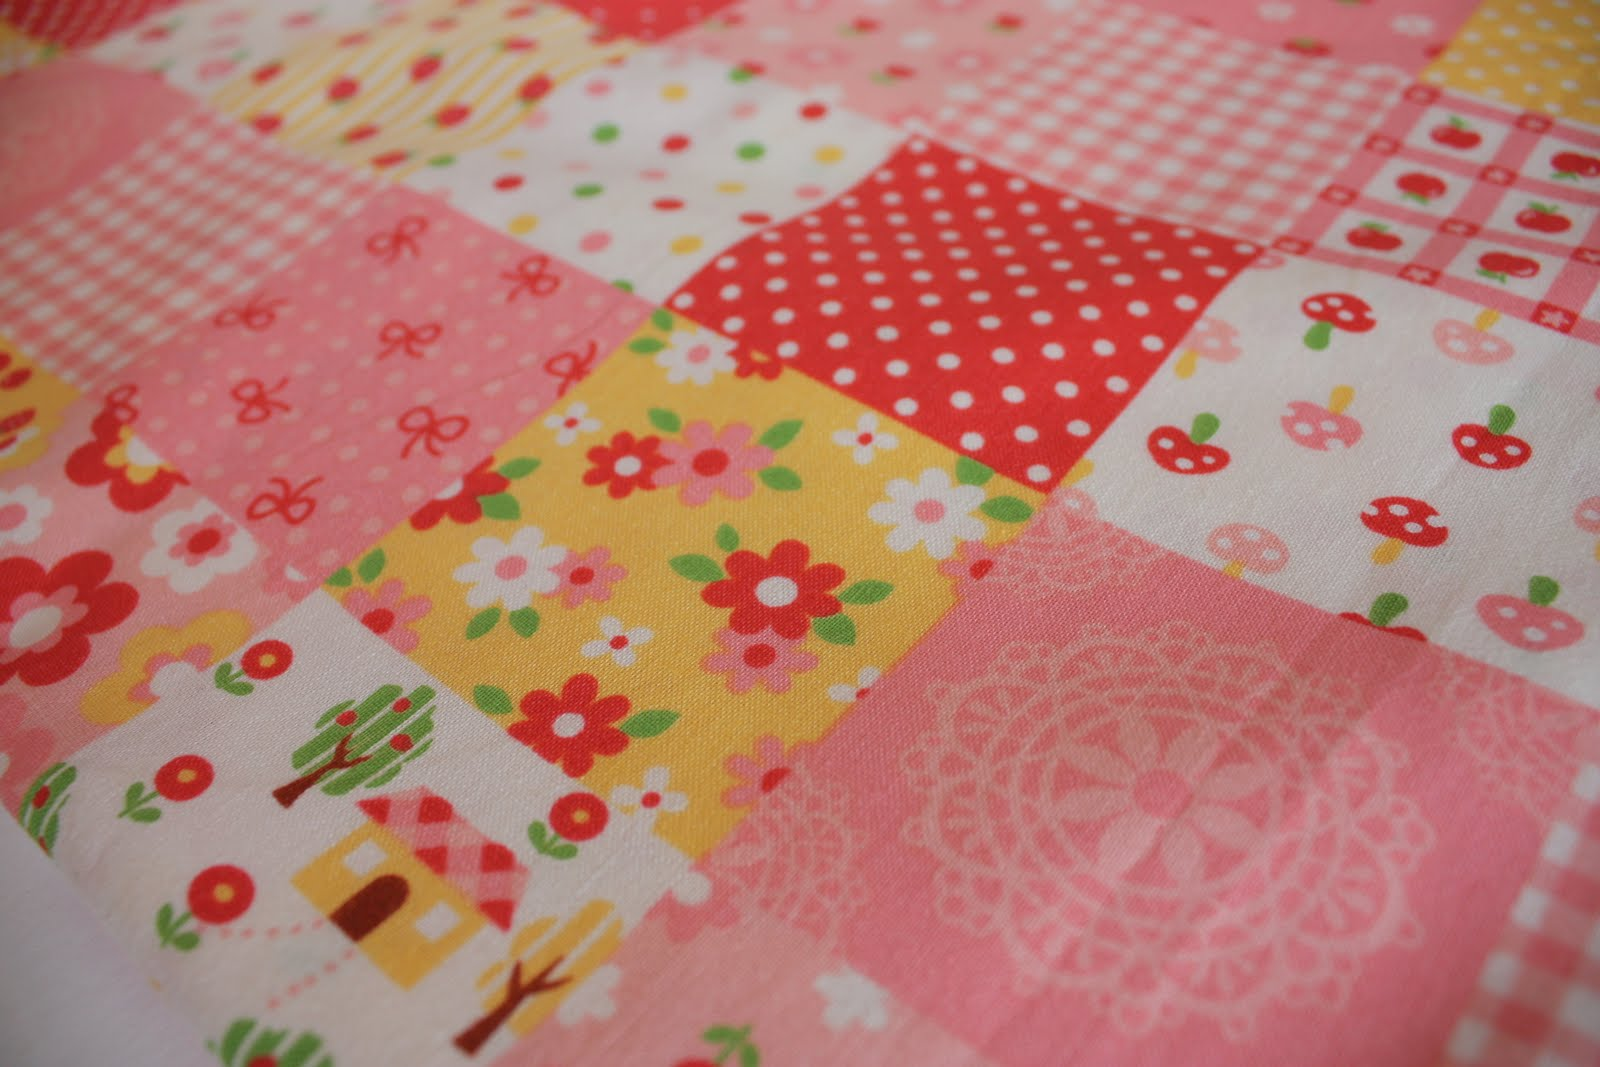 Fabric Cuteness Overload - Diary of a Quilter - a quilt blog